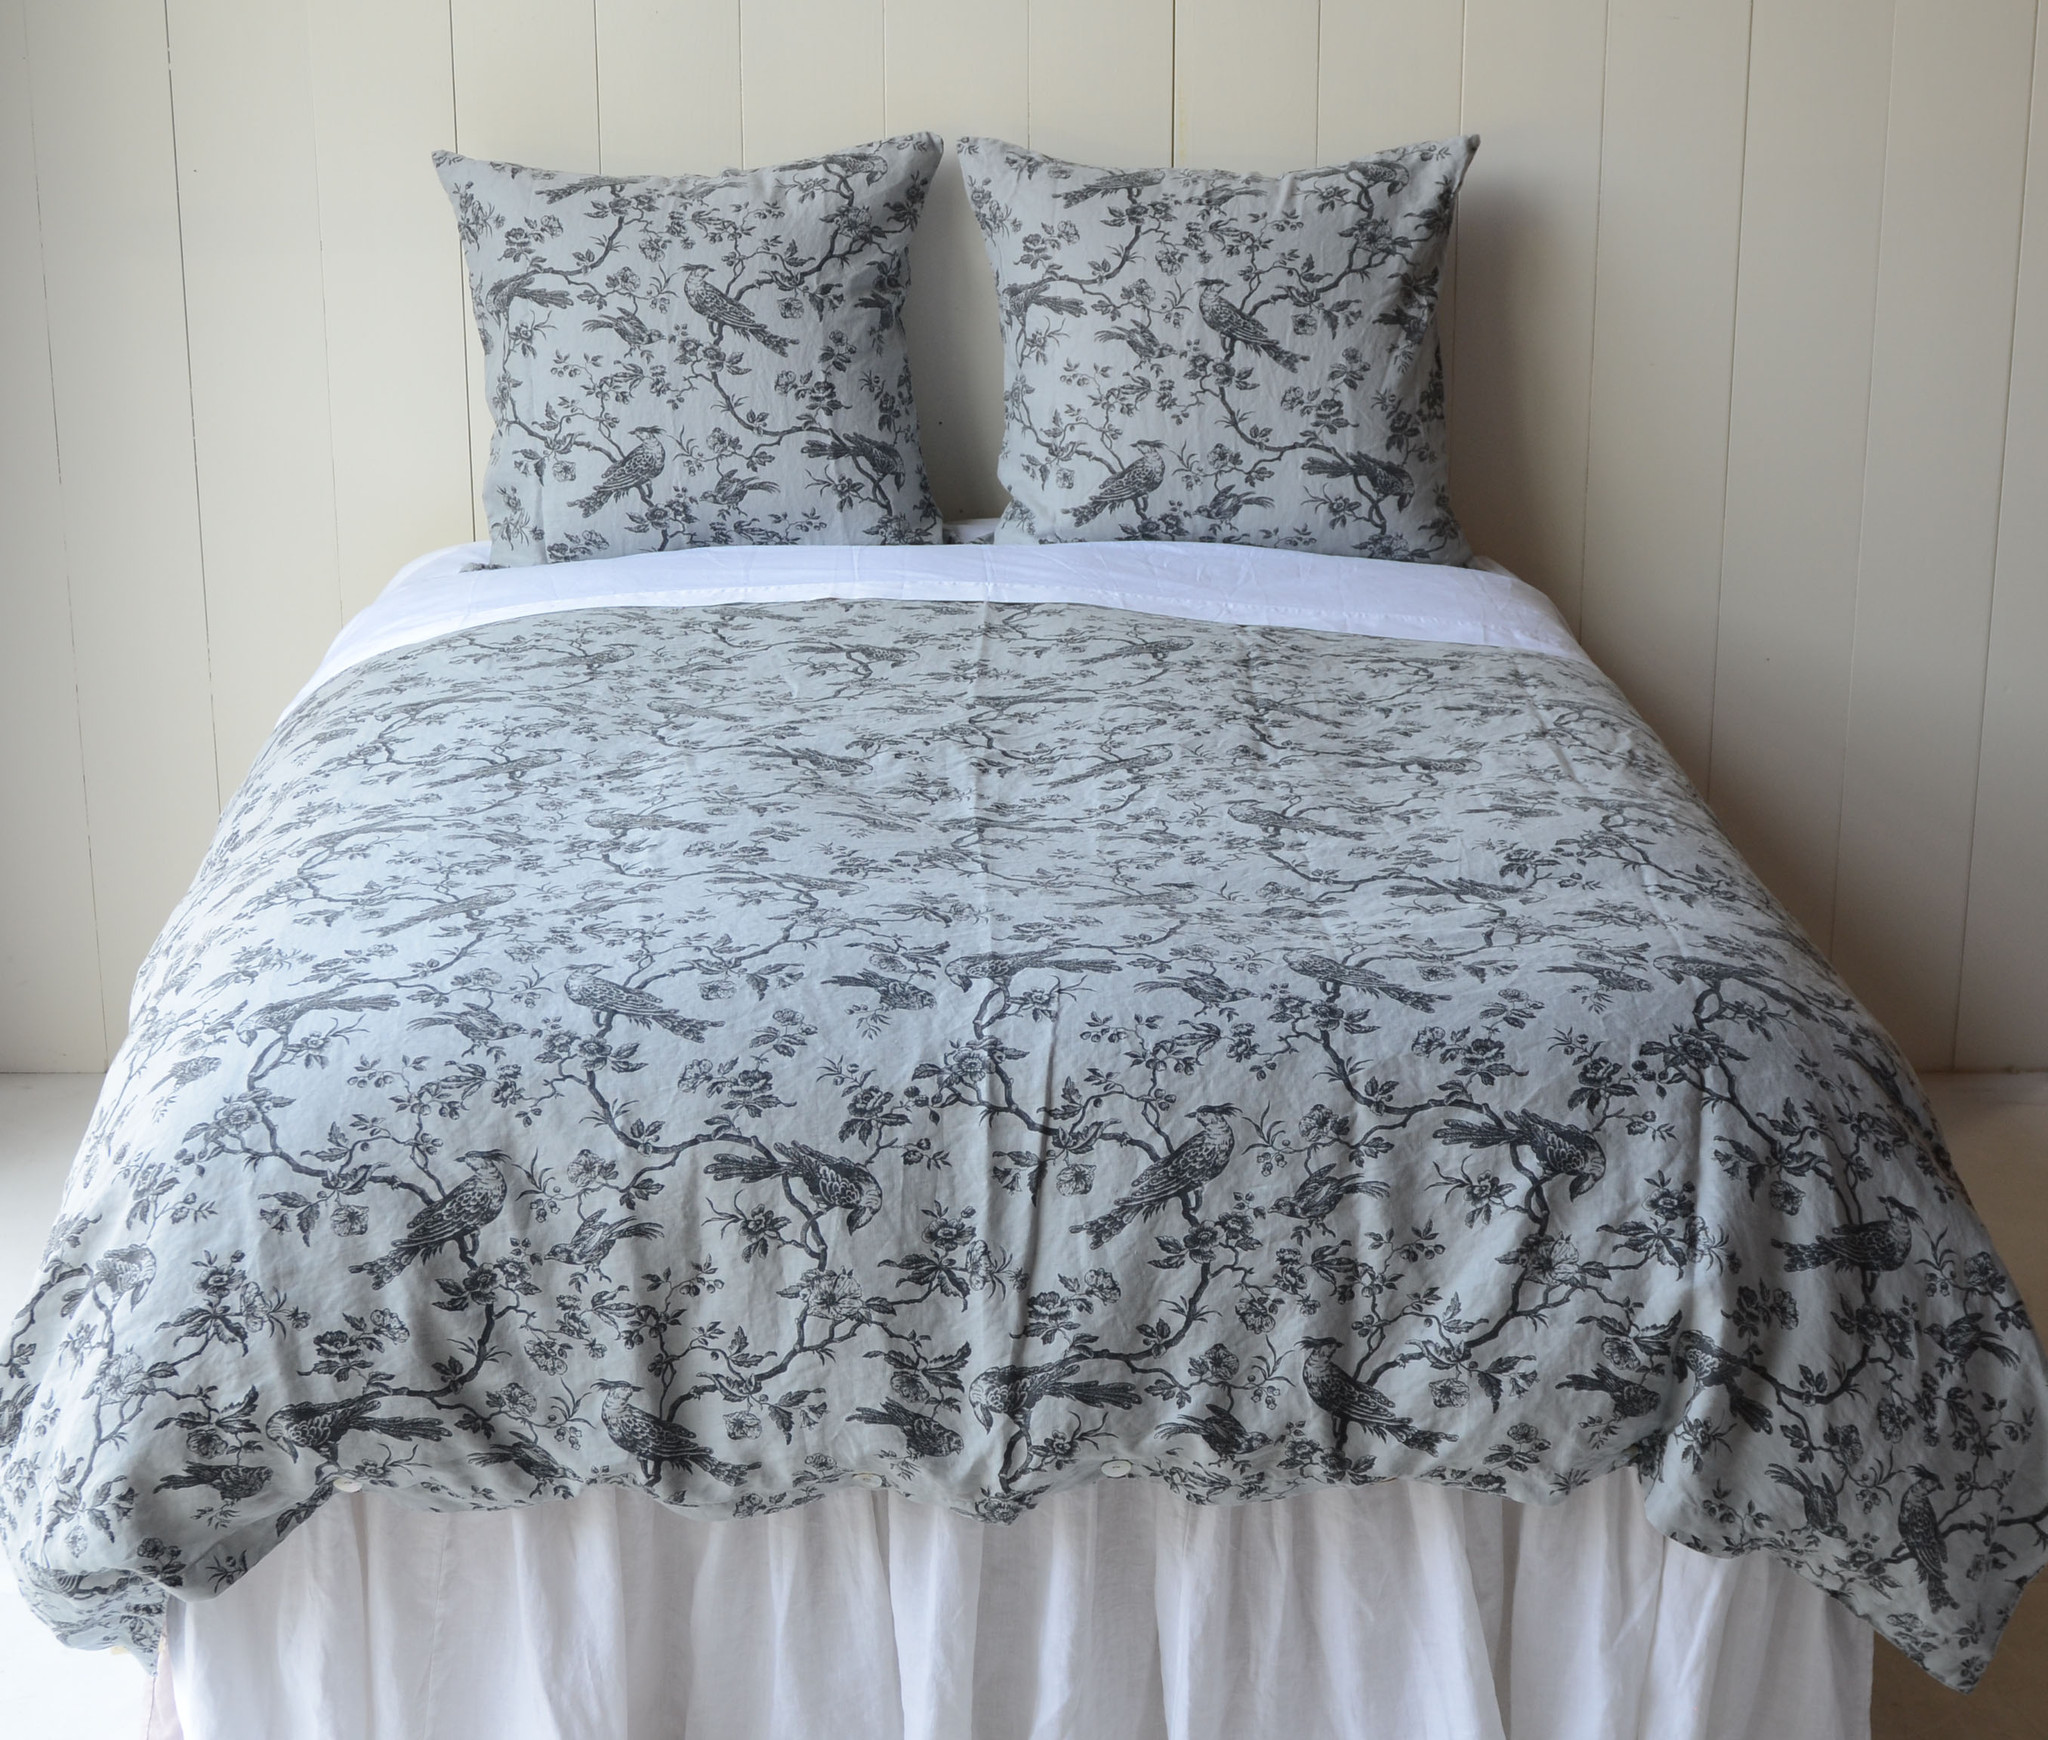 Bed Bath & Beyond Comforter Sets | Queen Duvet Covers | Linen Duvet Cover Queen